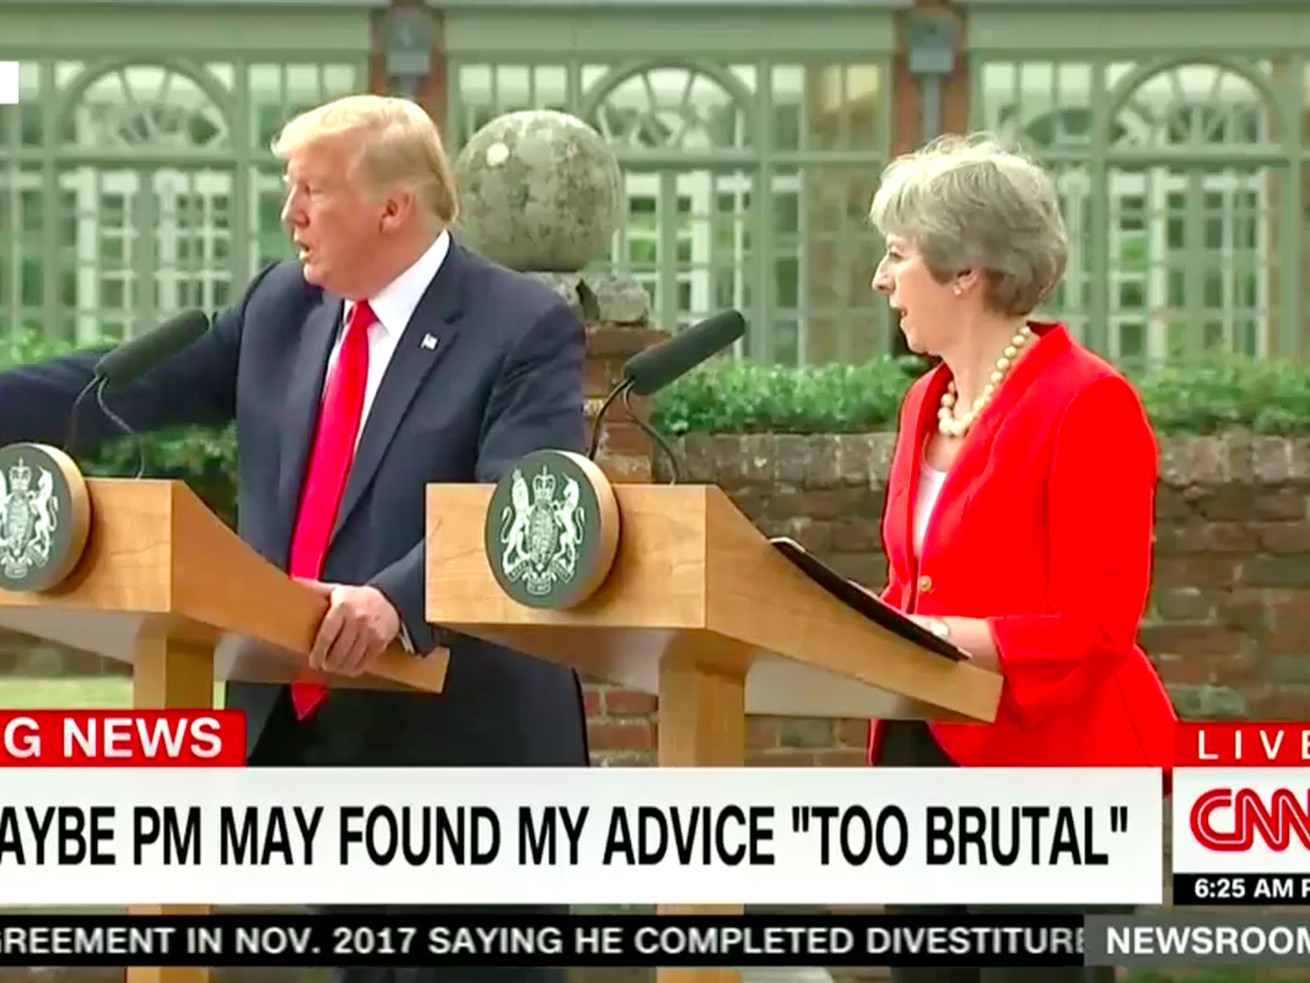 Trump refused to answer CNN's questions at a press conference with UK Prime Minister Theresa May.